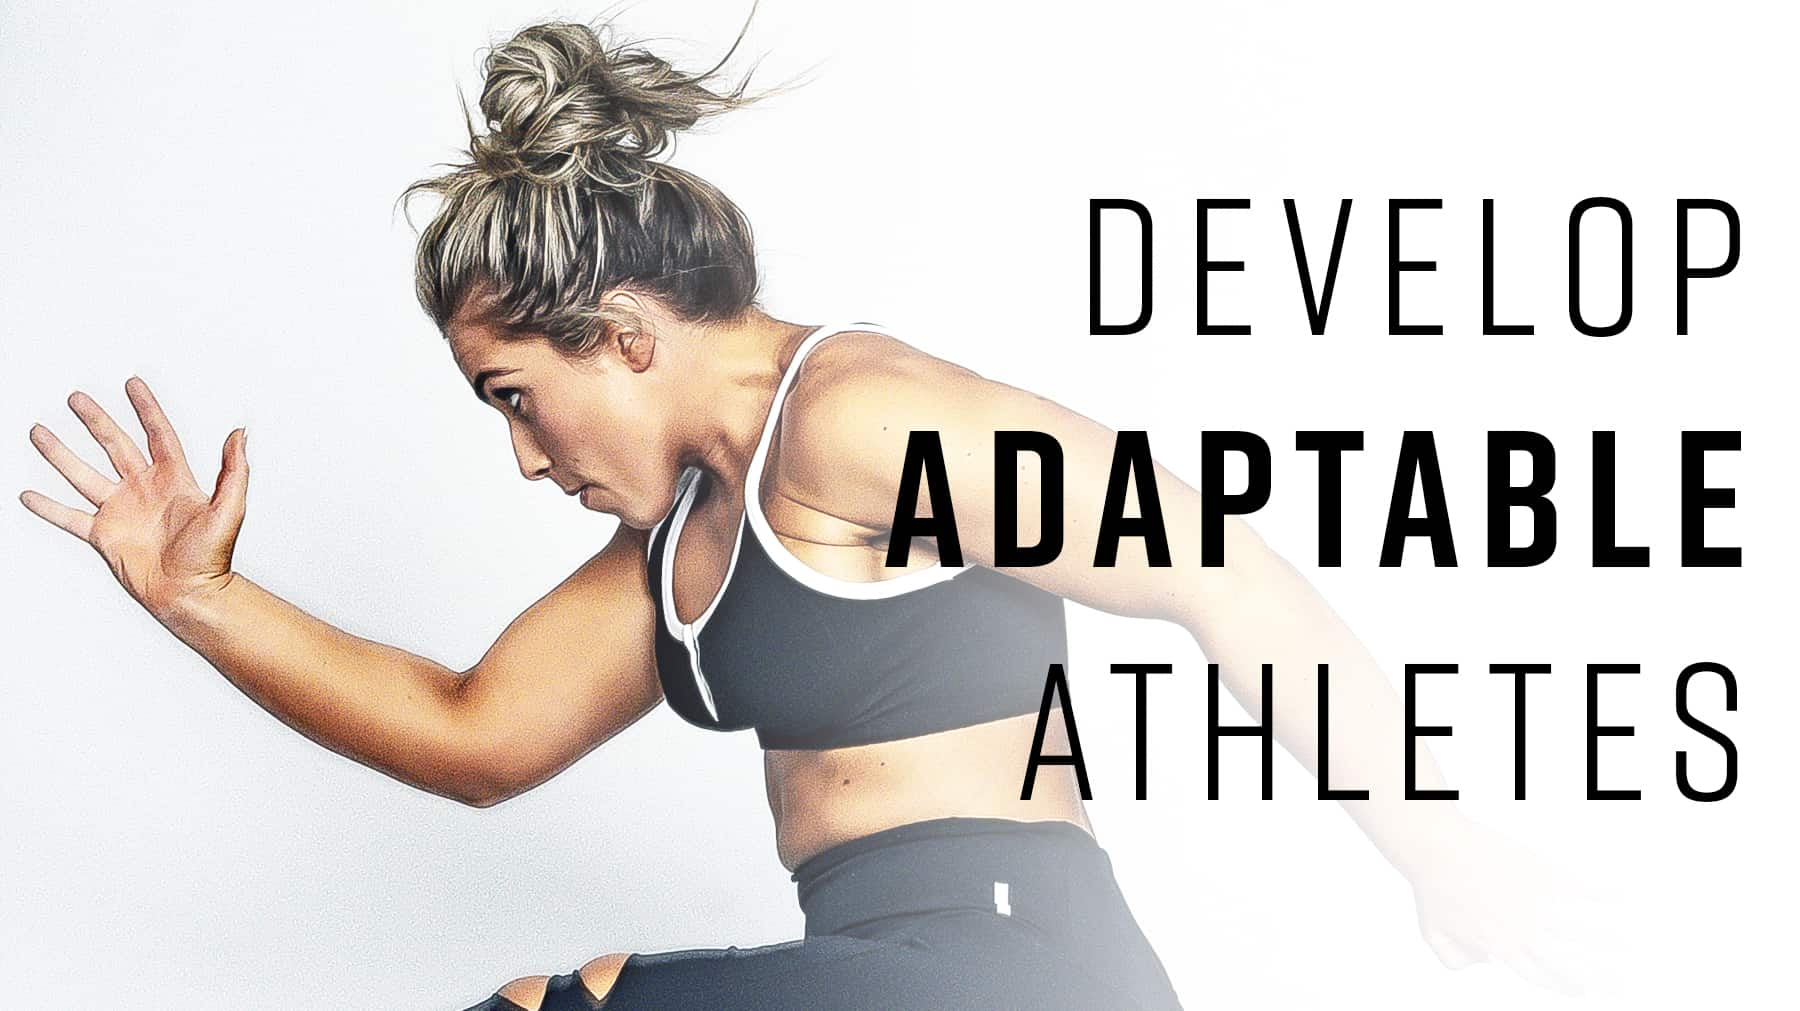 Develop adaptable athletes